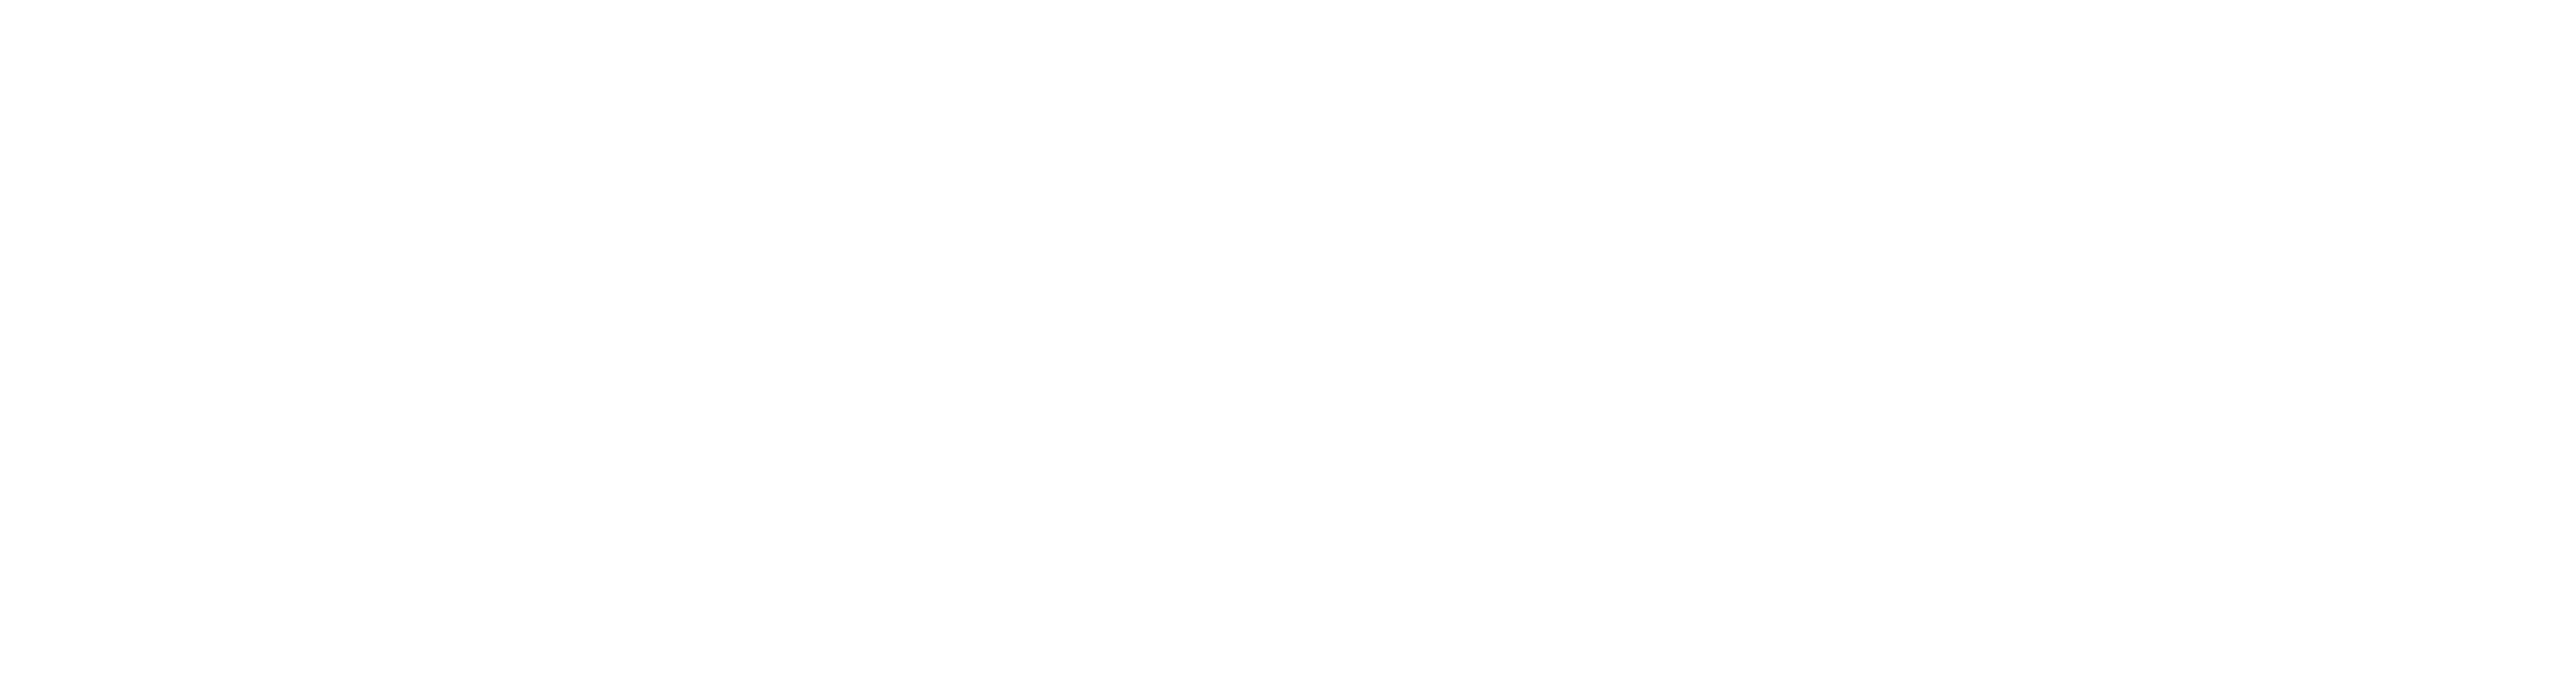 Payments Innovation Alliance